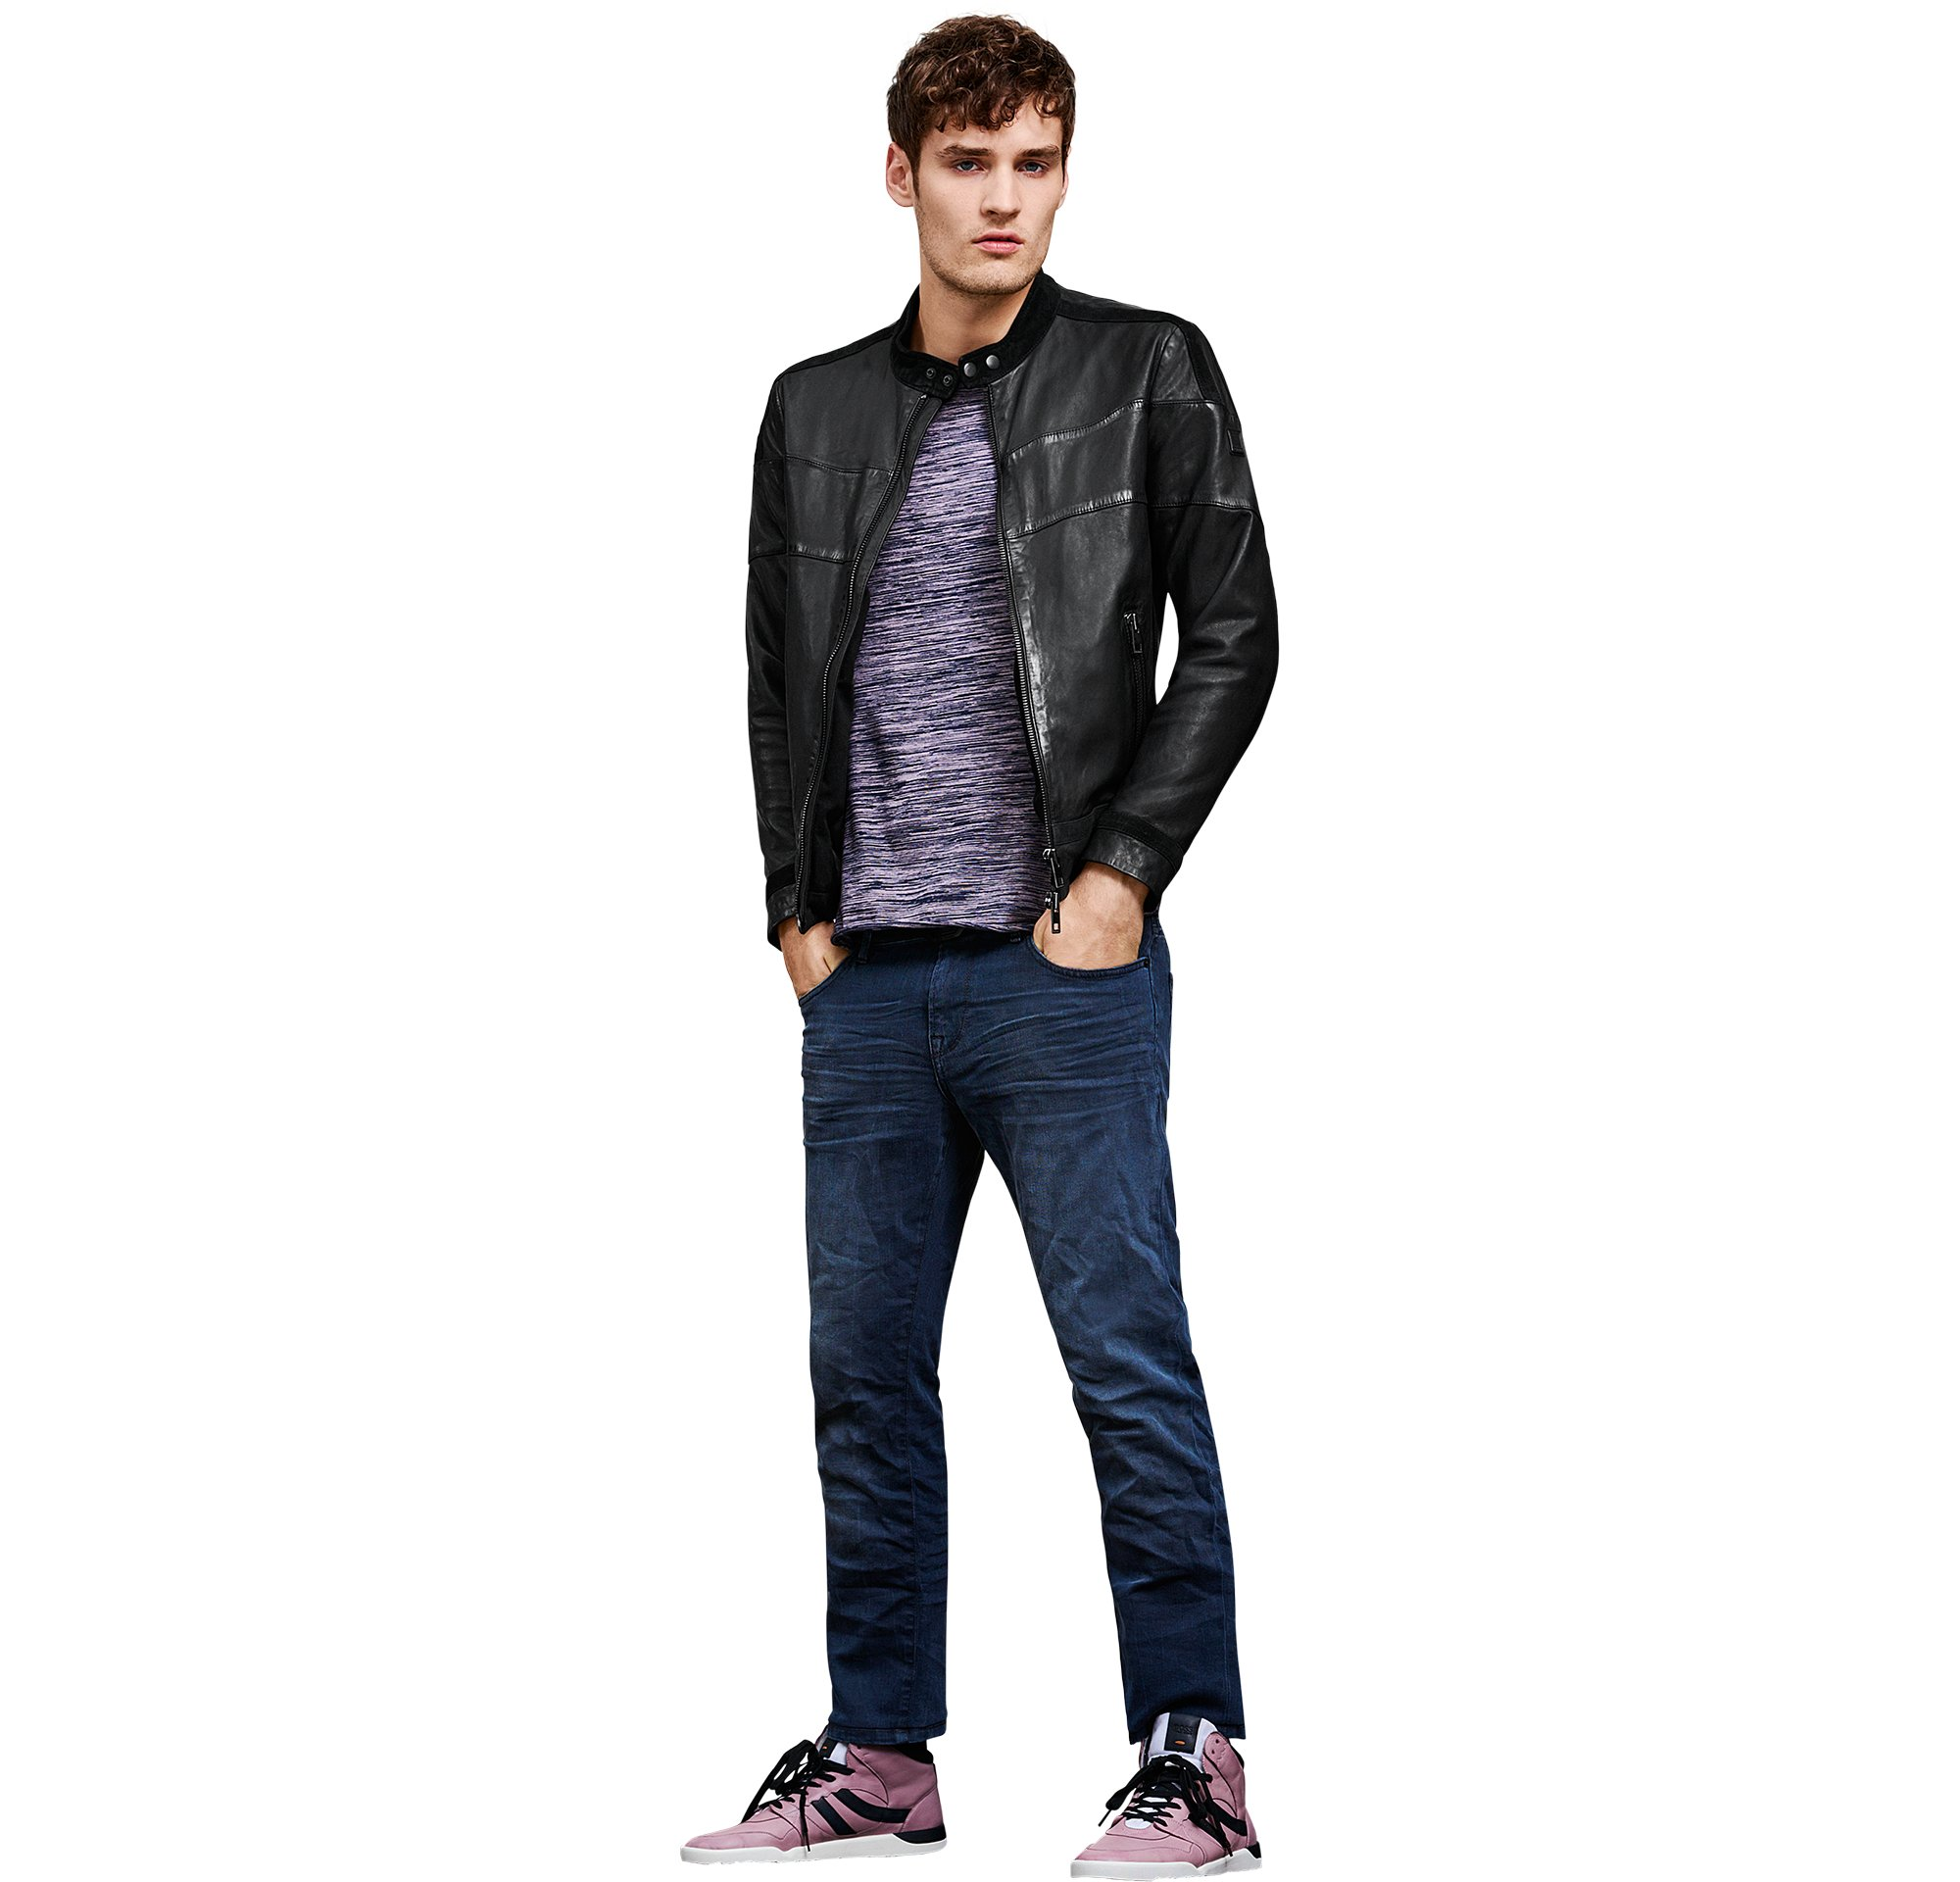 Black leather jacket over blue jersey and shoes by BOSS Orange